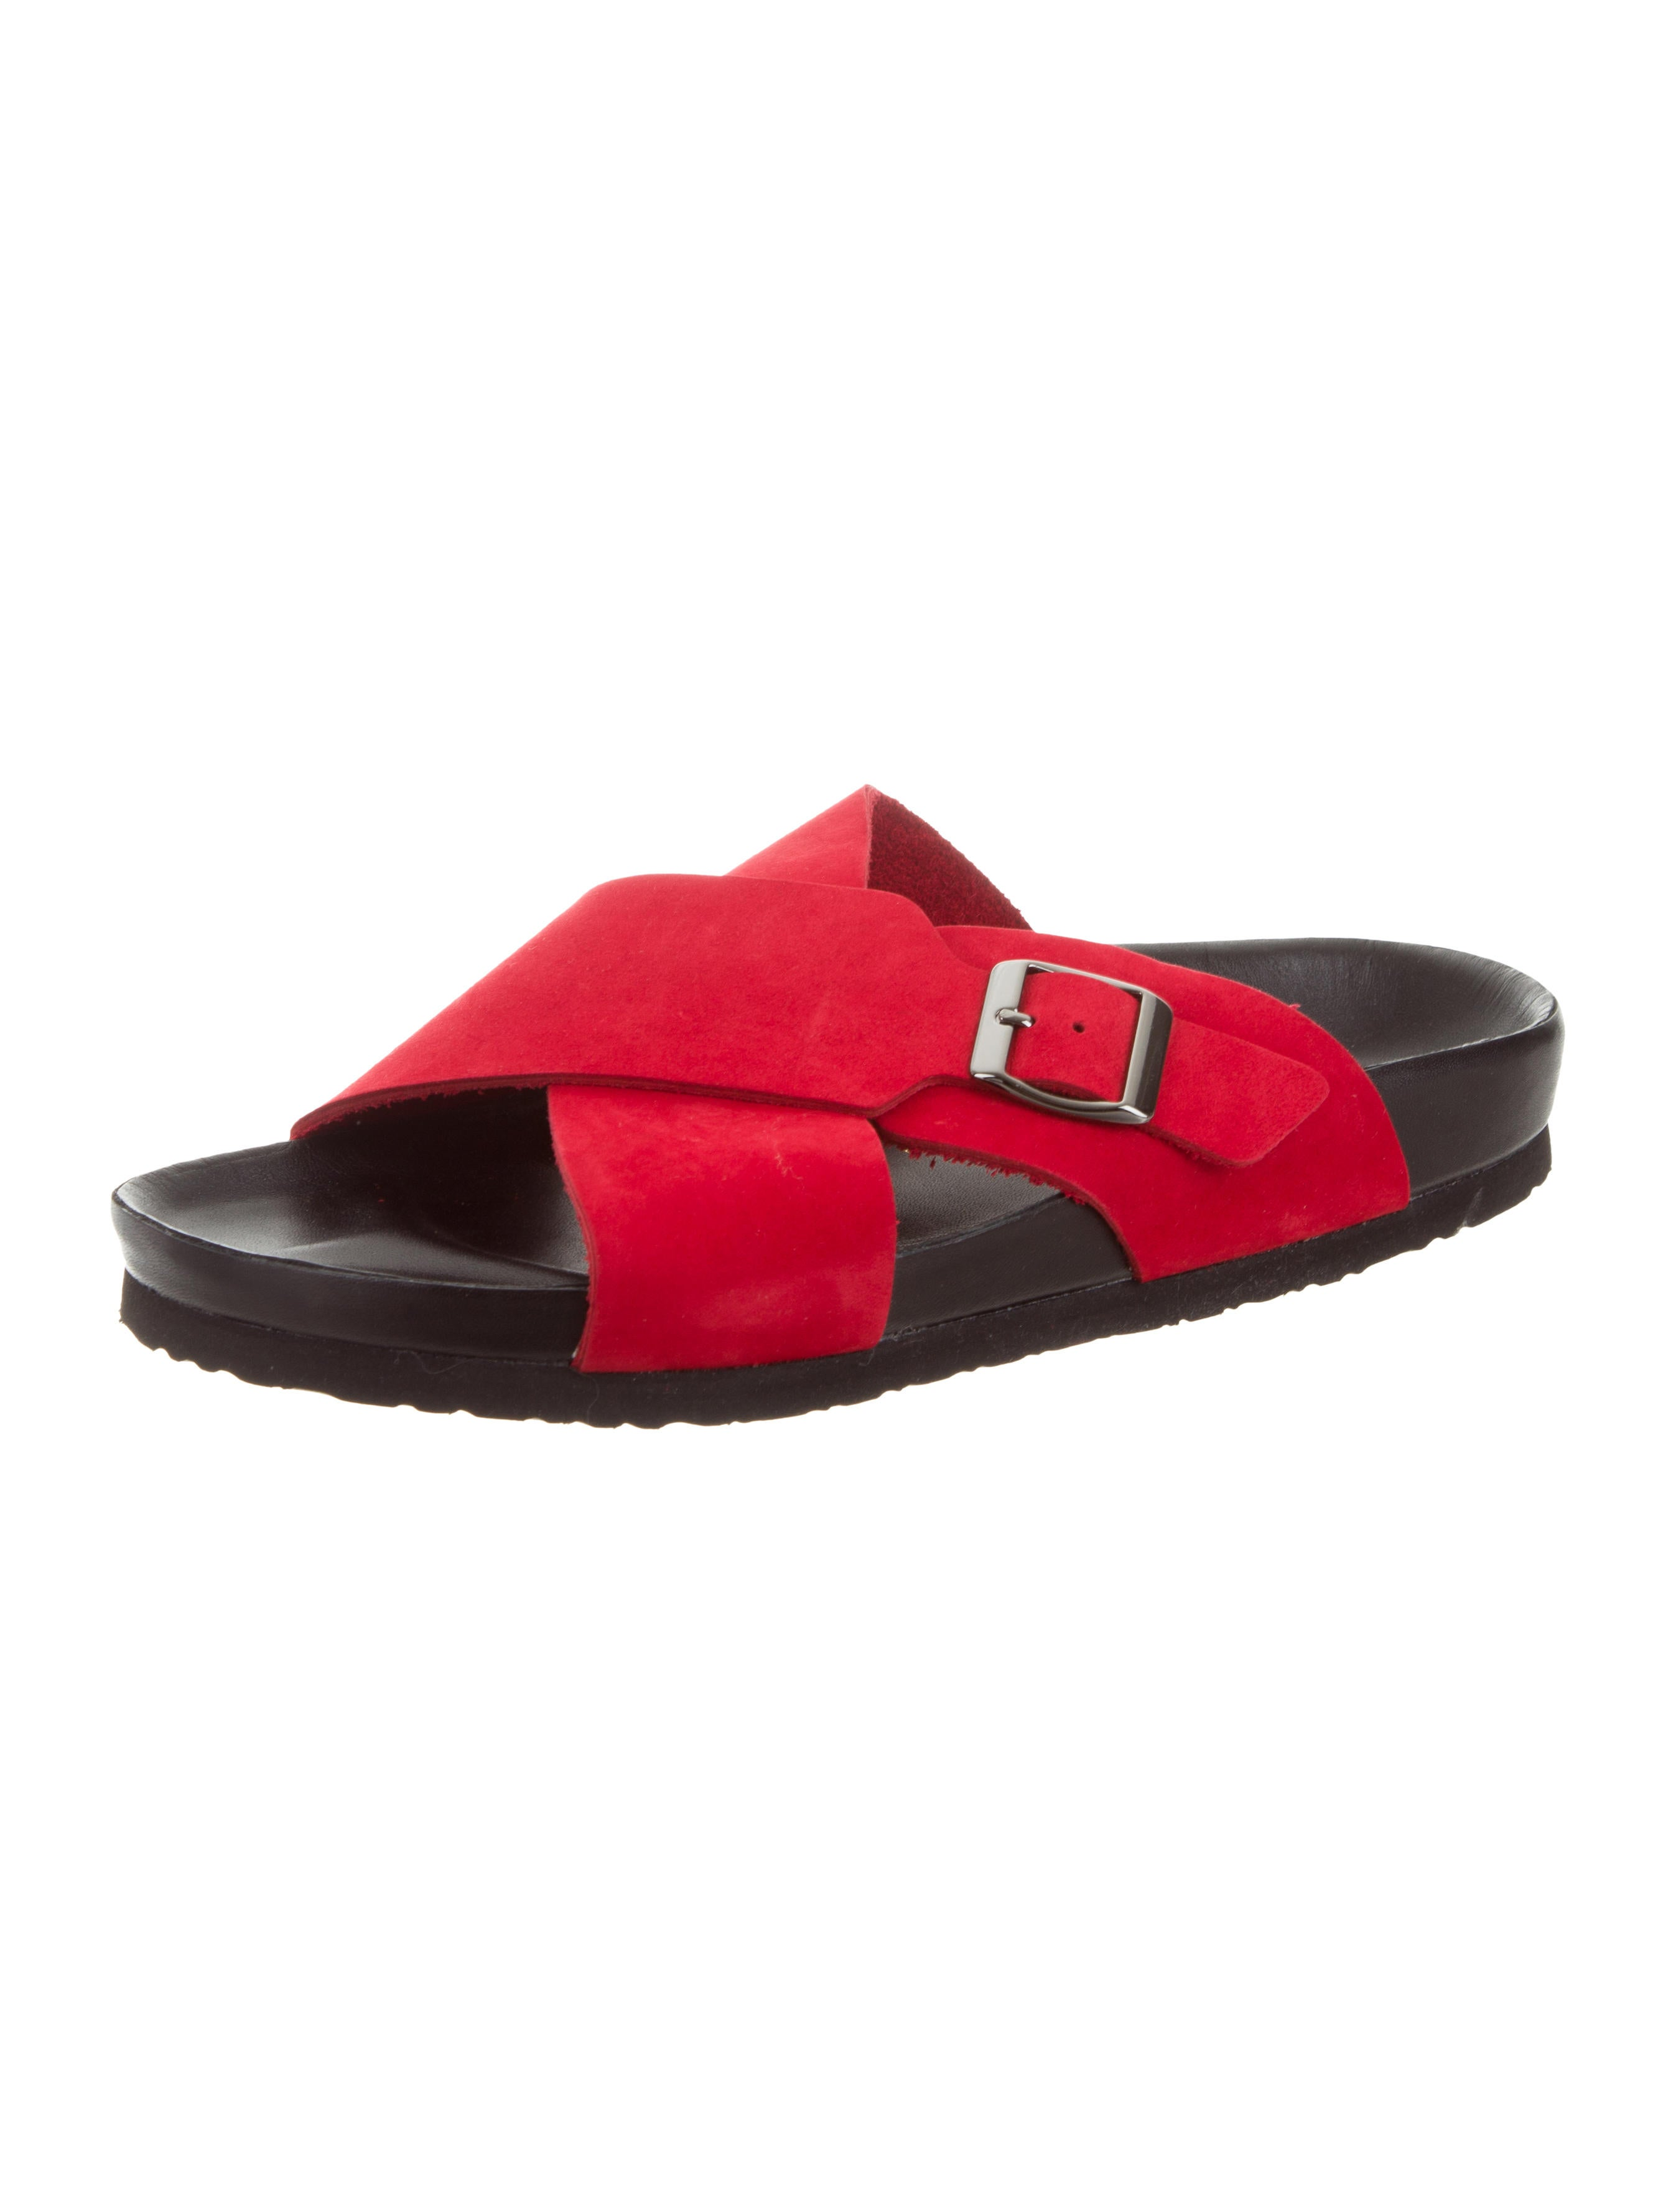 clearance store for sale NewbarK Suede Slide Sandals w/ Tags Cheapest best prices cheap online ebay for sale outlet sale online 7bXucRp0